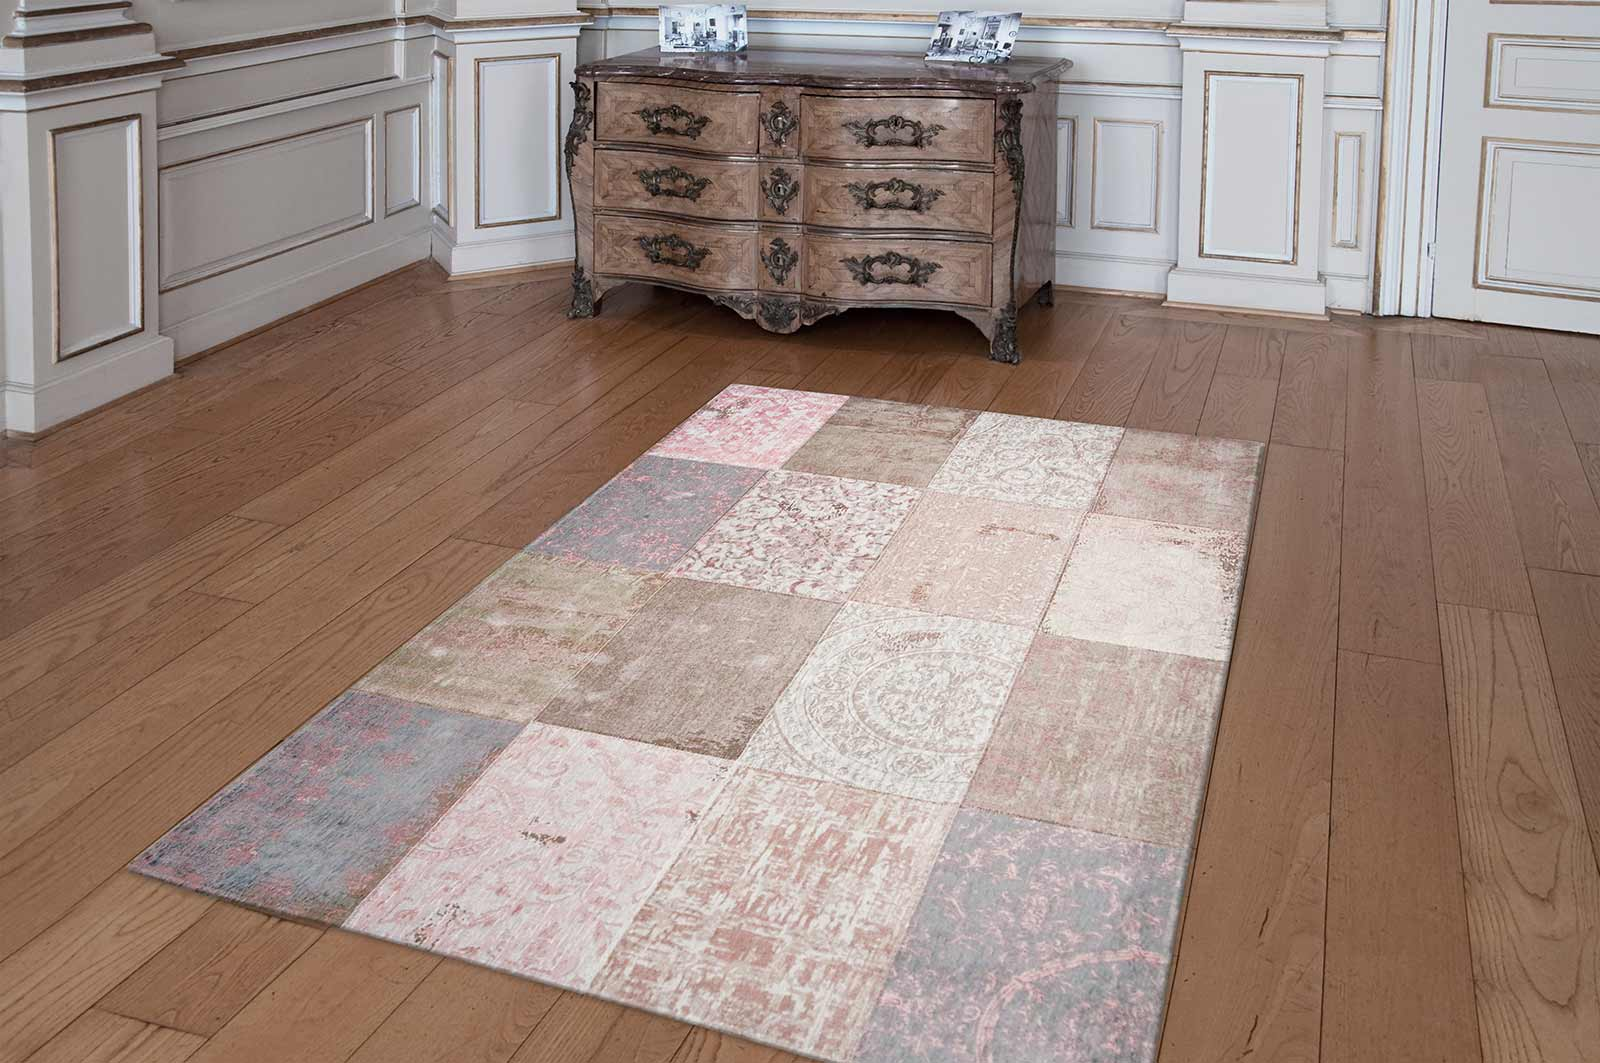 louis de poortere rug cameo bolsho pink 8238 patchwork. Black Bedroom Furniture Sets. Home Design Ideas